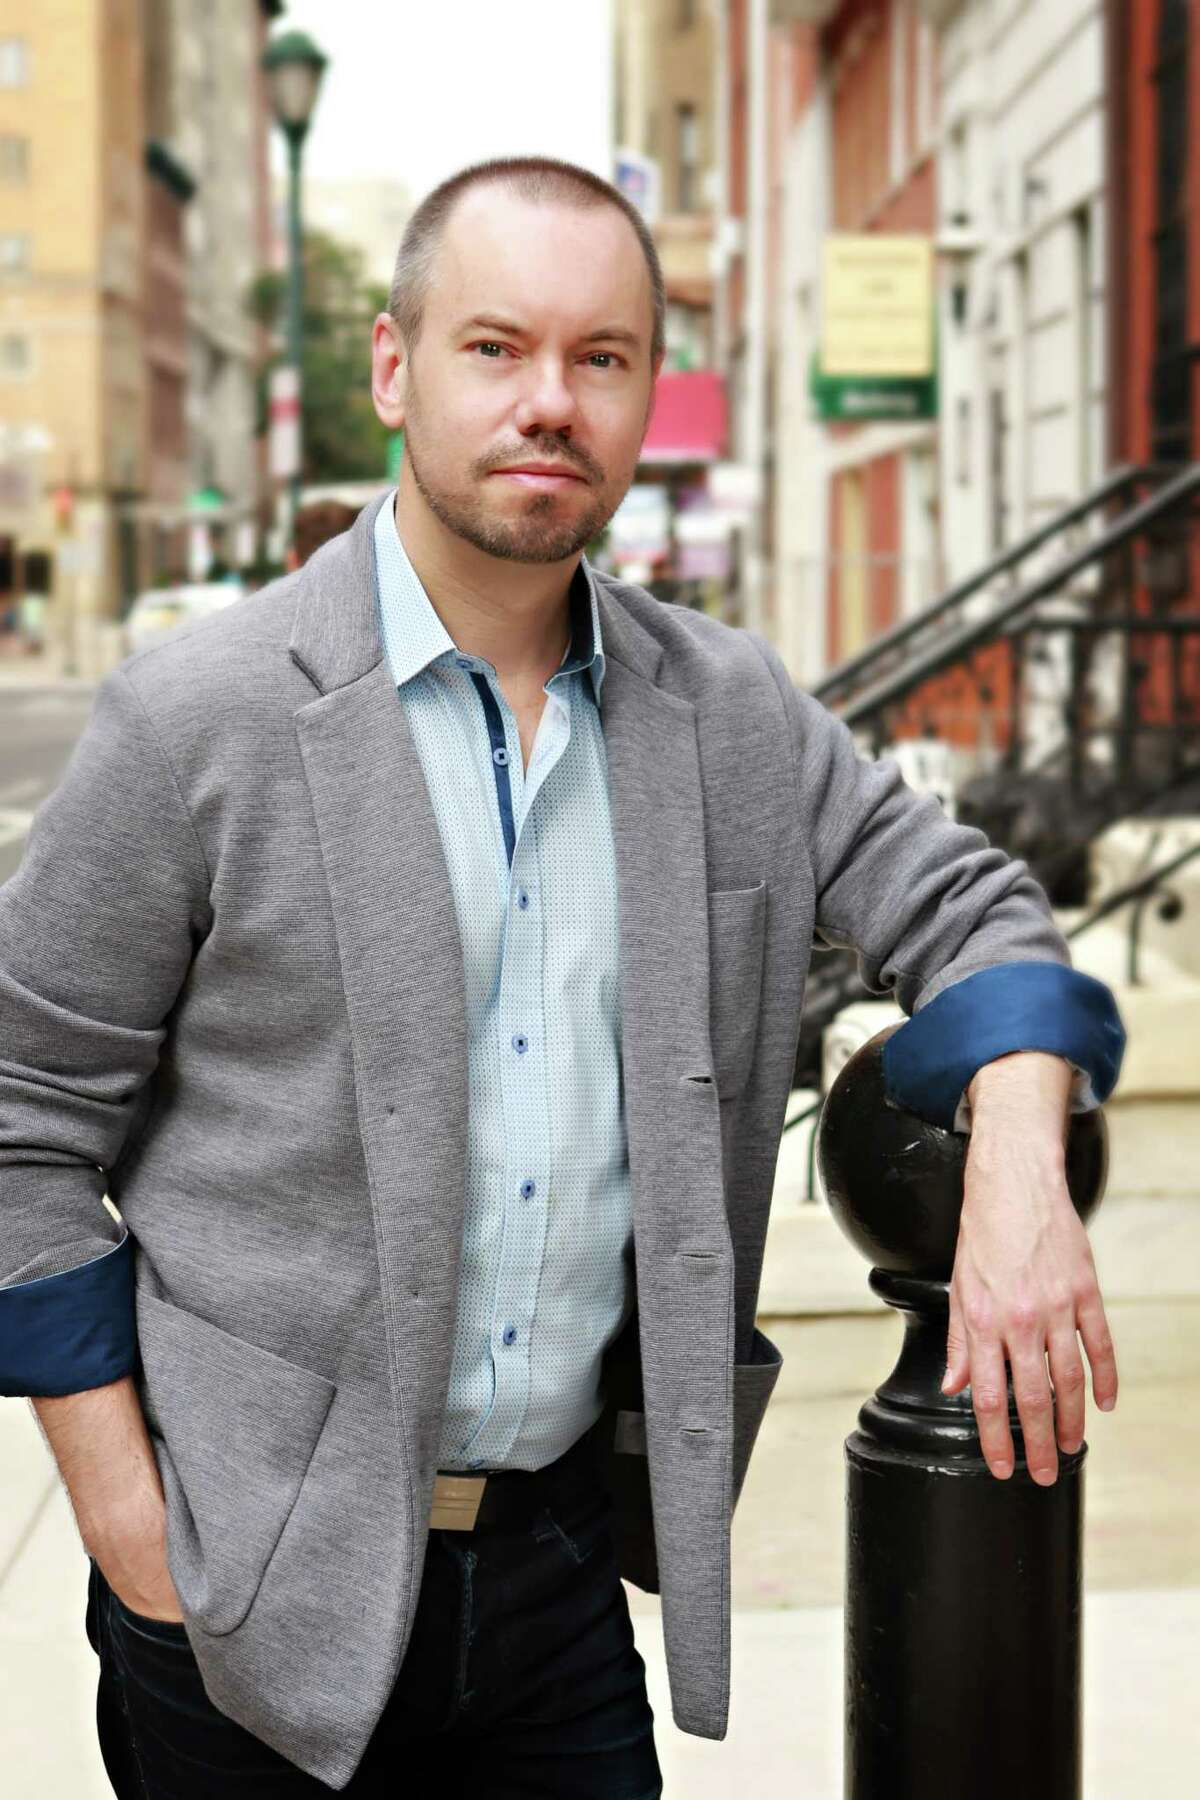 Dan Knechtges has joined Theatre Under the Stars as its new artistic director.